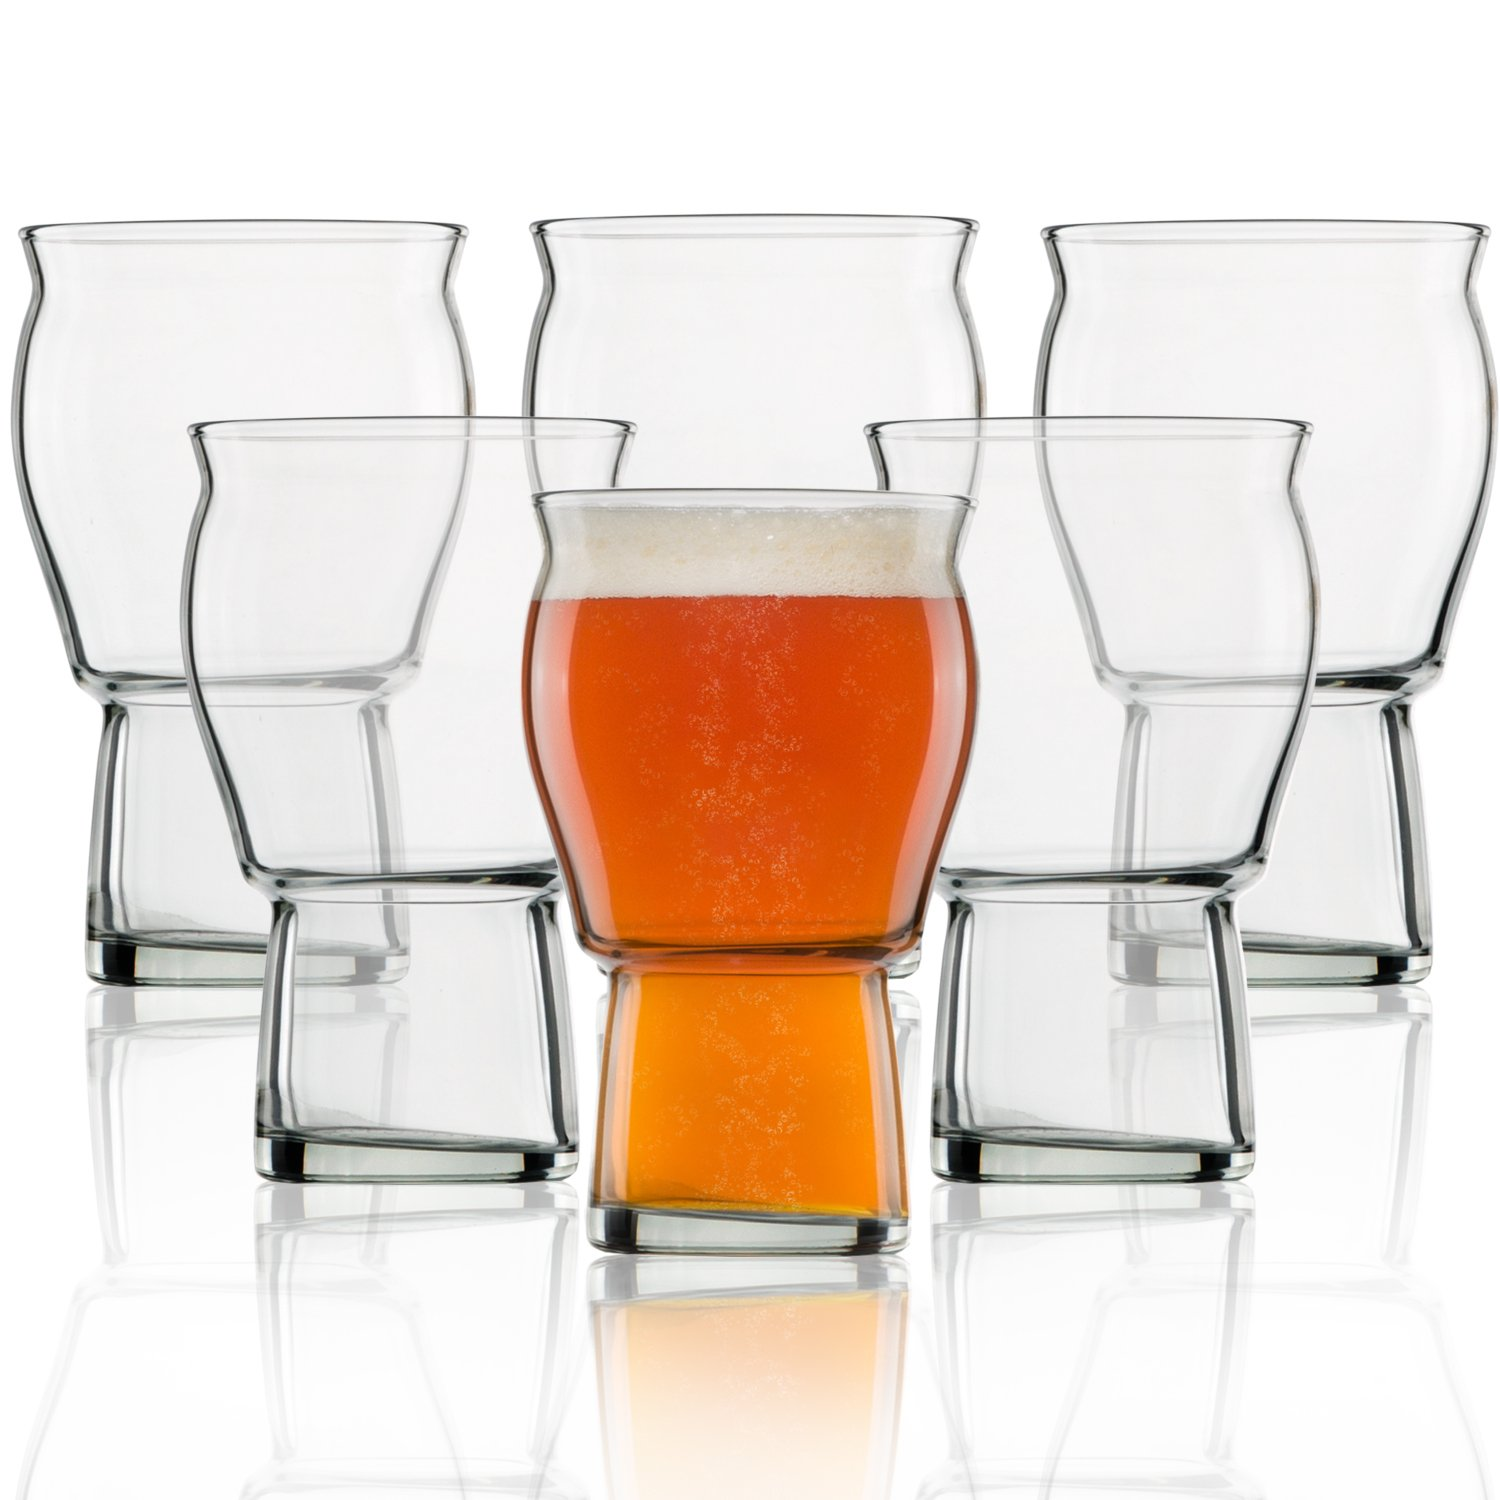 A Beer Glass for Beer Drinkers - Nucleated Pint Glasses for Better Head Retention, Aroma and Flavor - 16 oz Craft Beer Glass IPA for Beer Drinking Bliss - Gift Idea for Men - 6 Pack